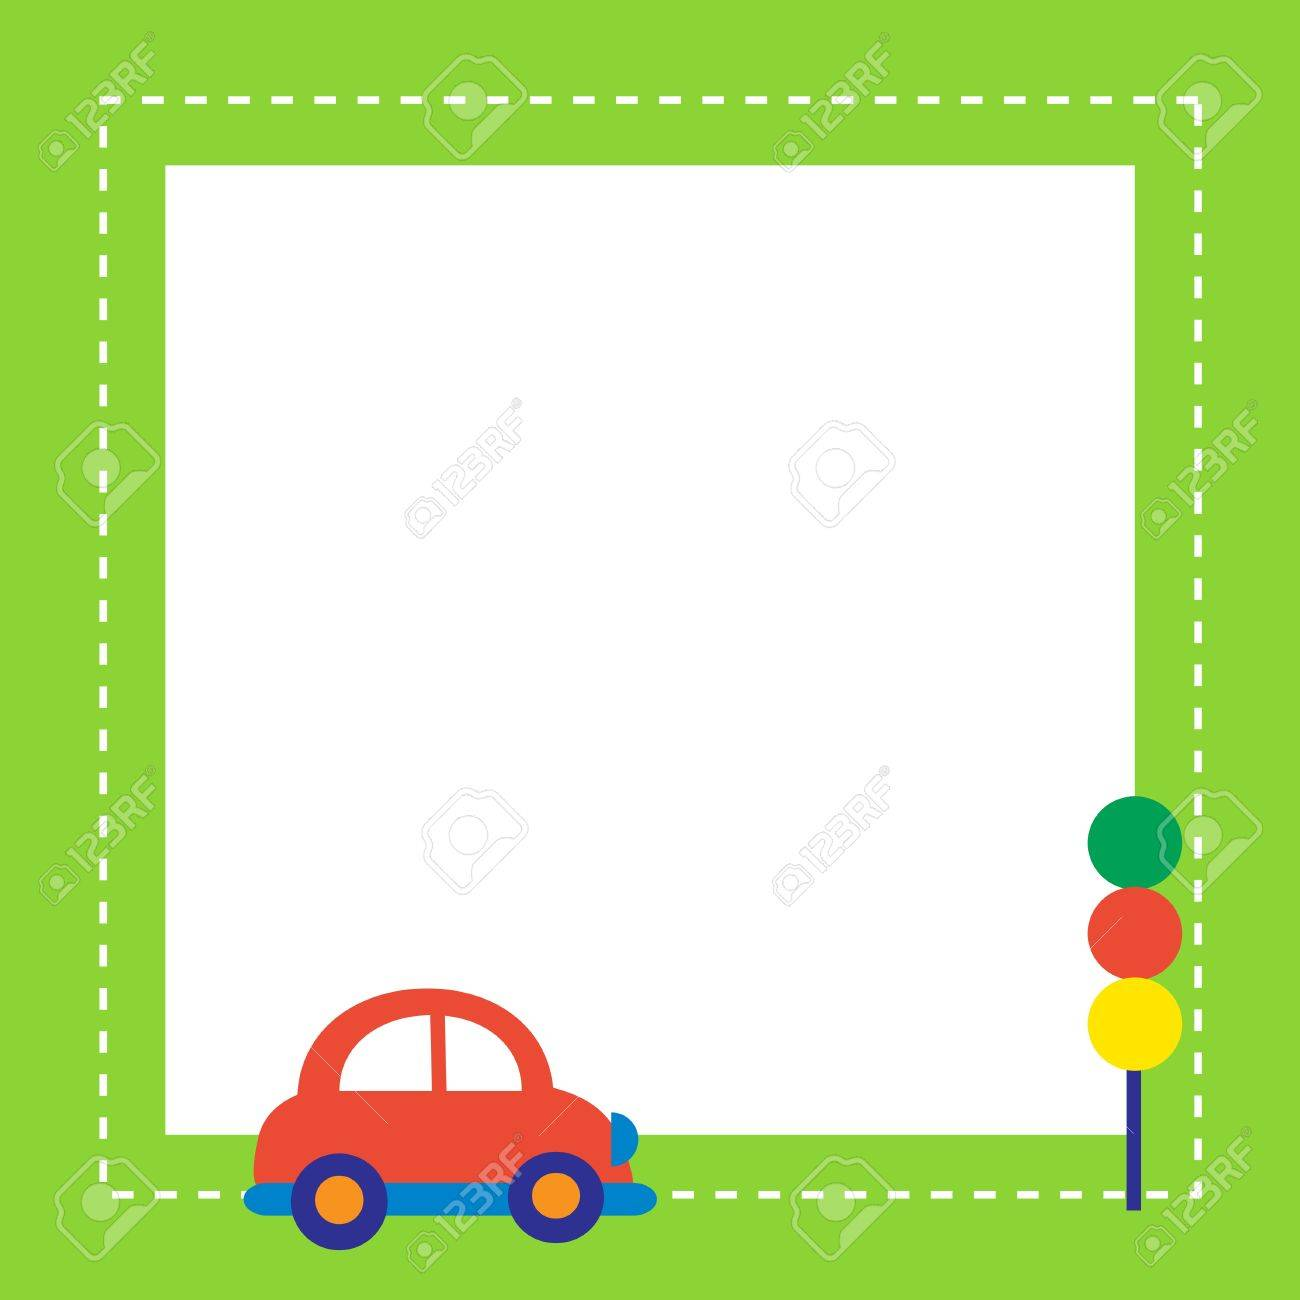 red car with traffic light Stock Vector - 11555382